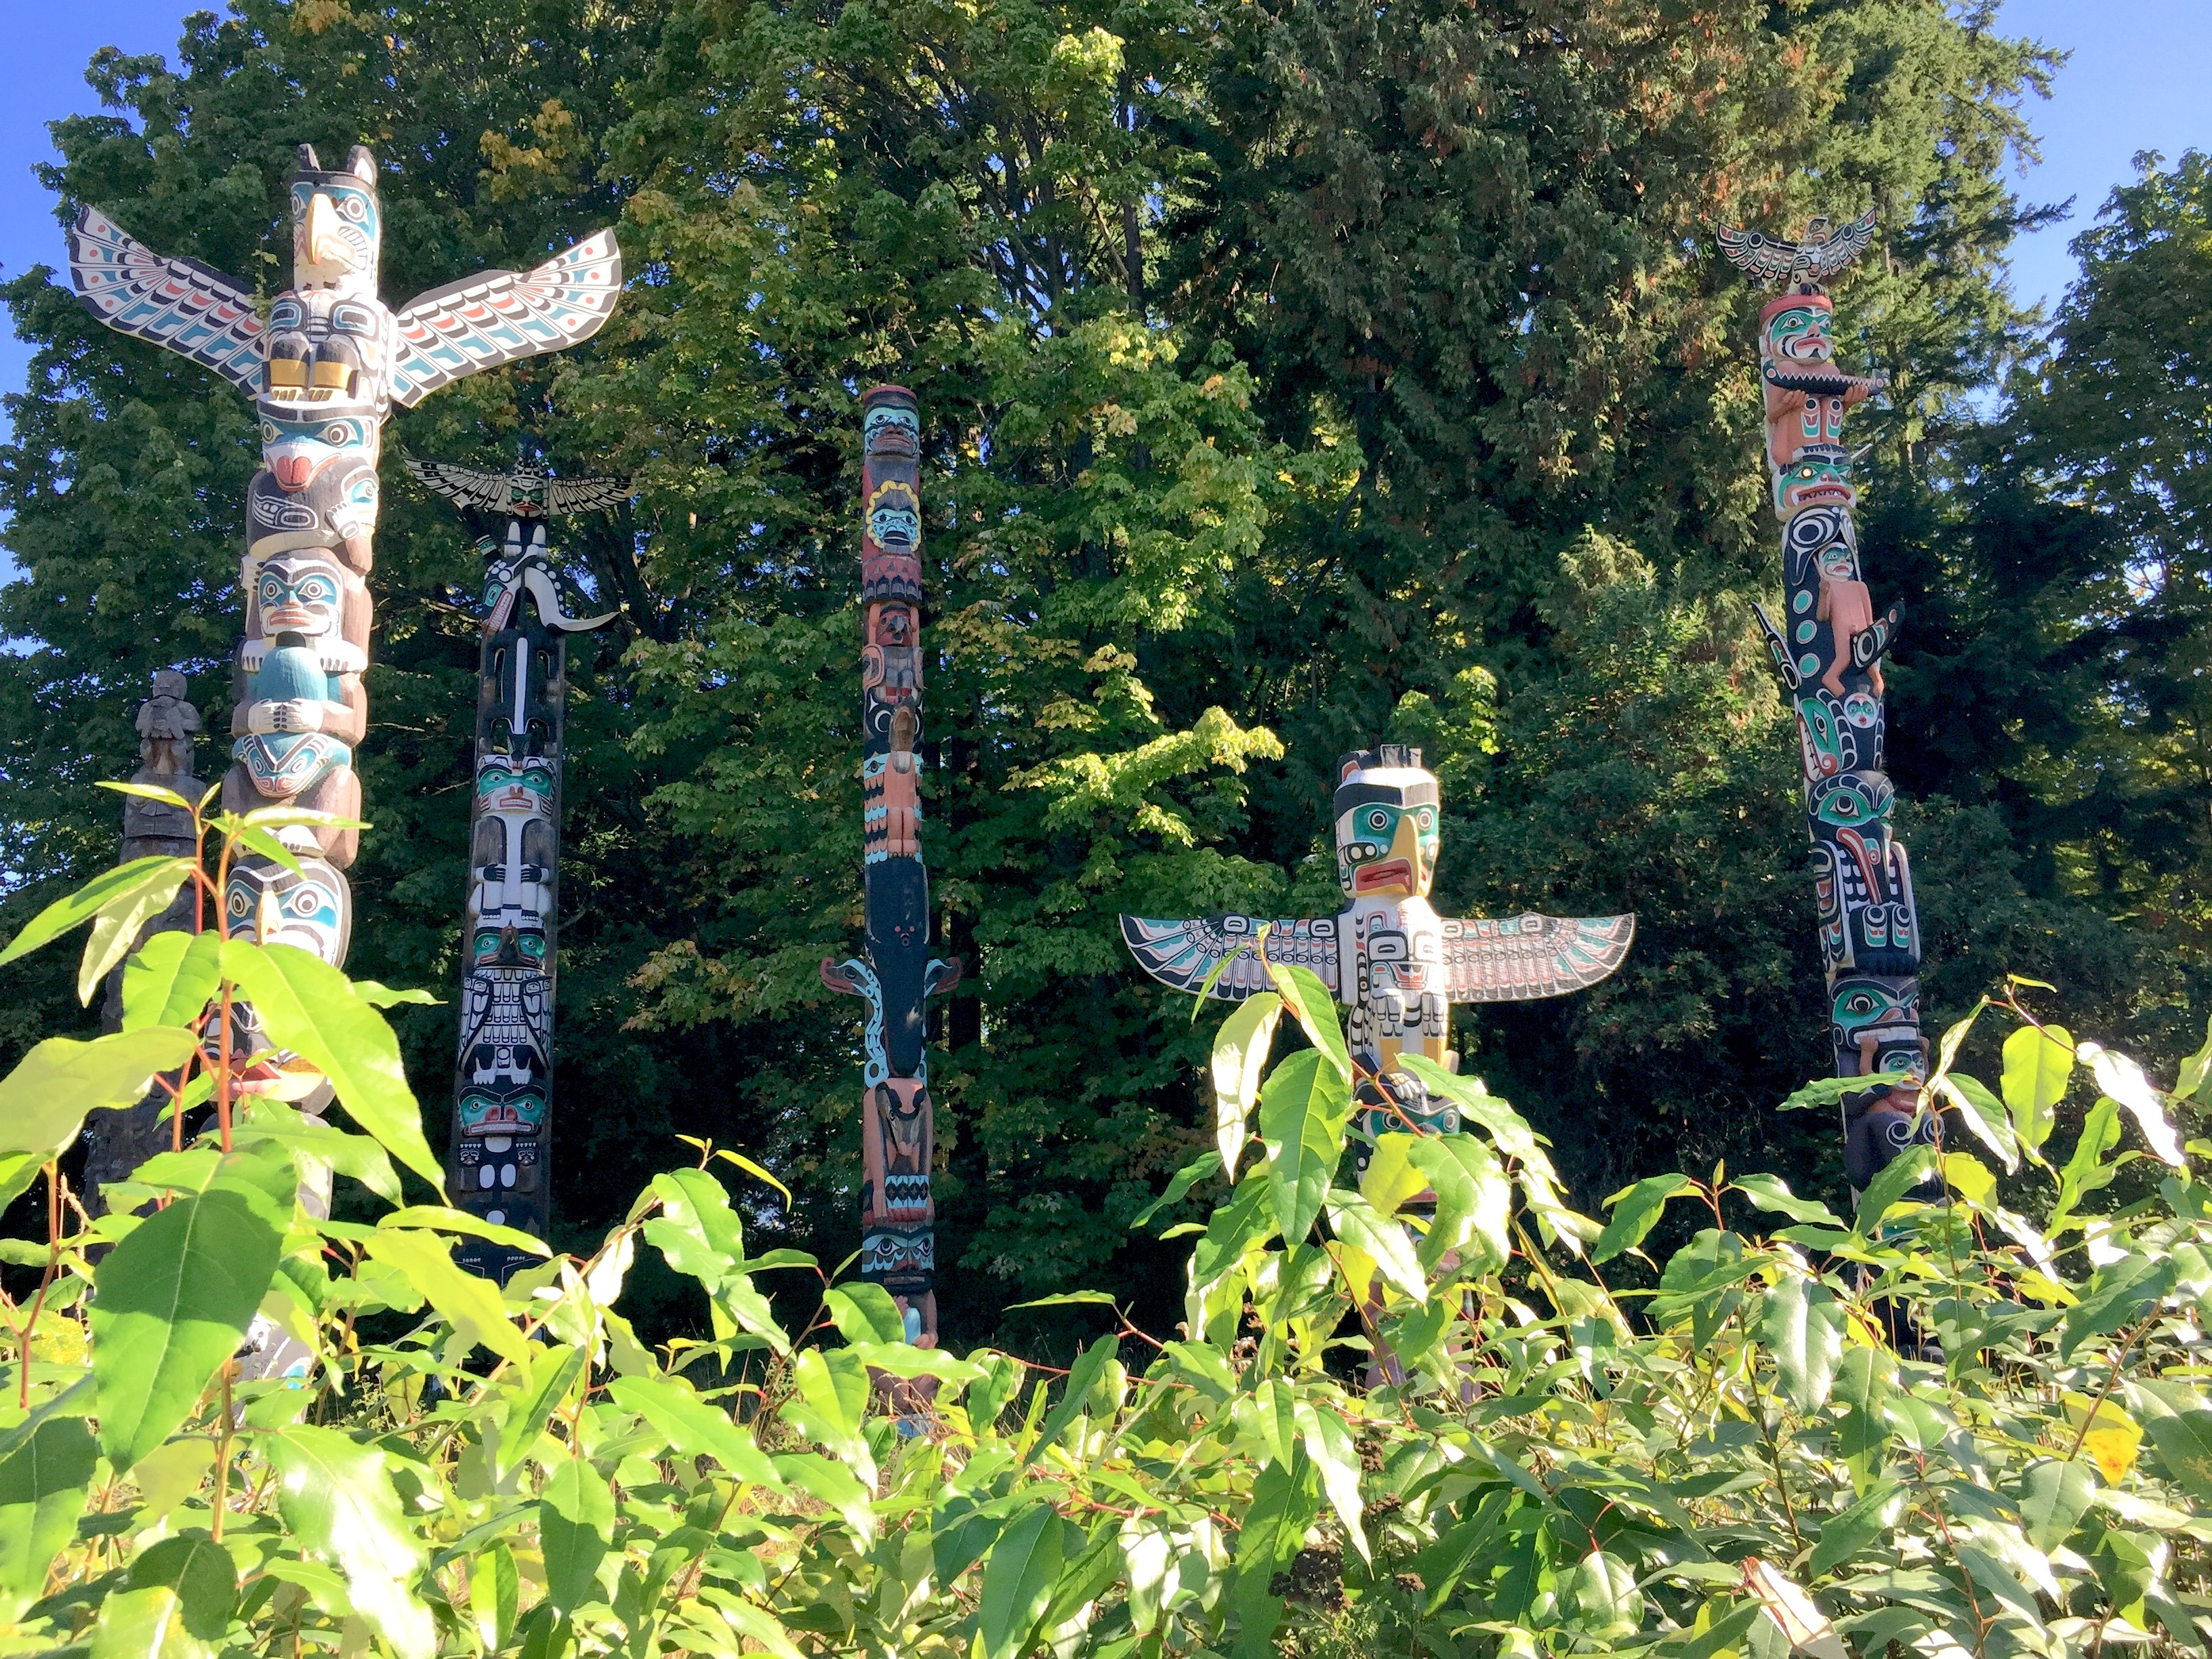 The famous totem poles at Brockton Point